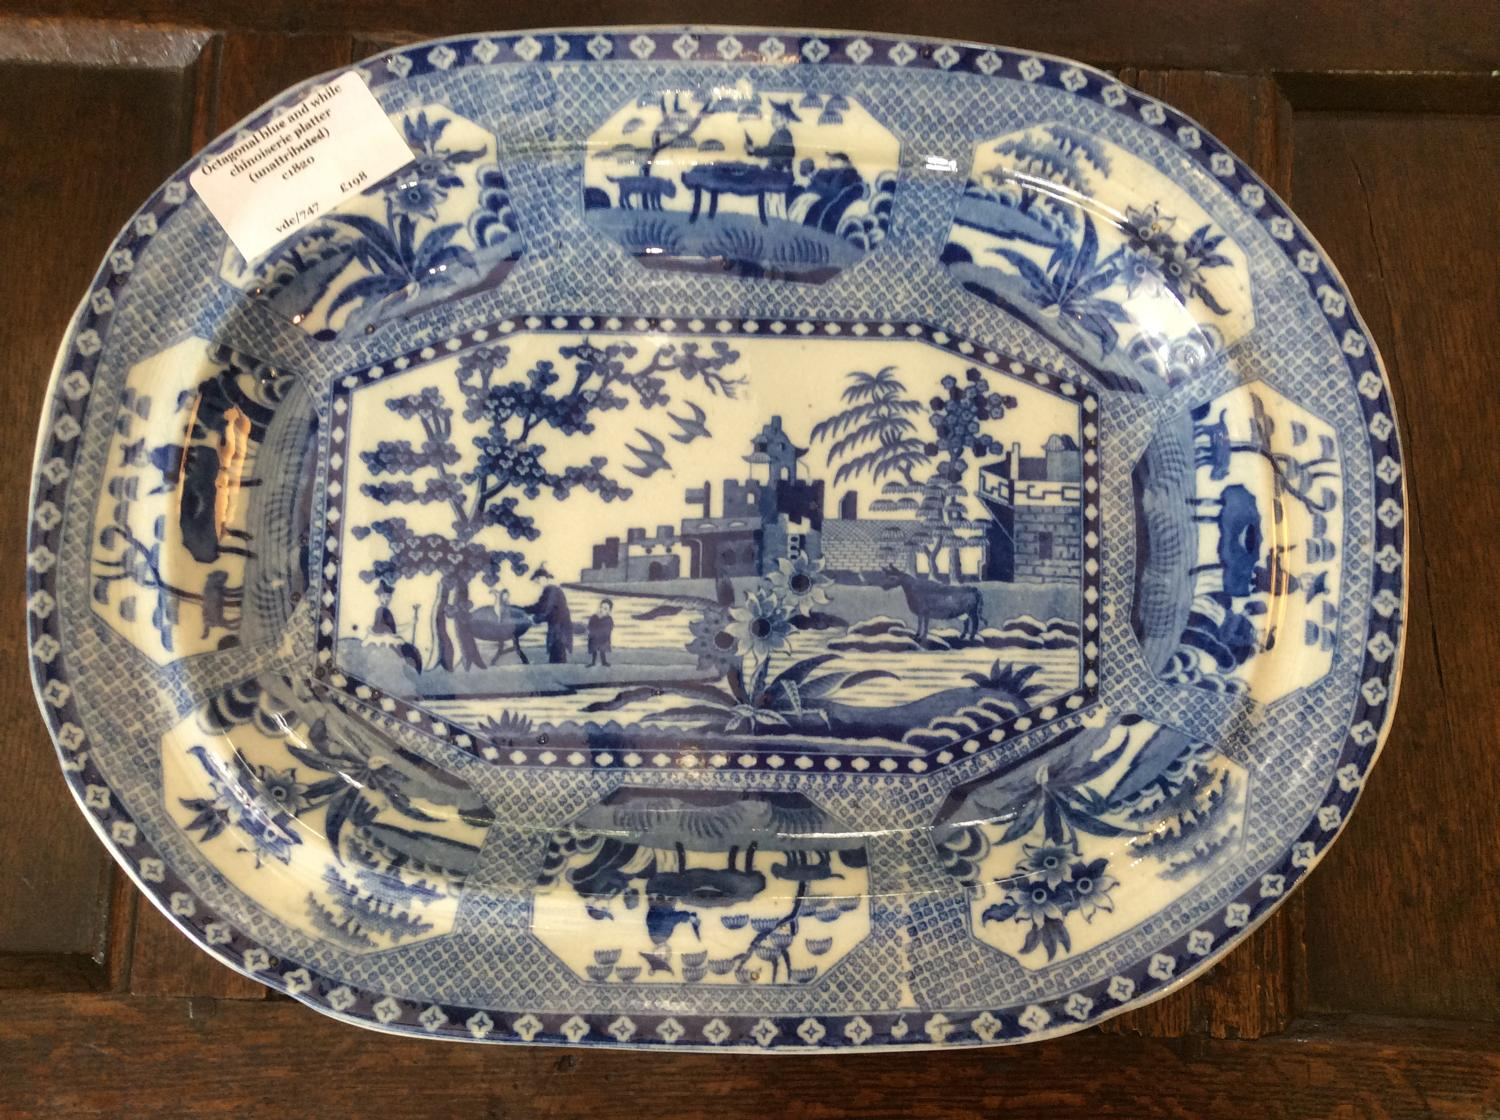 Blue and white chinoiserie transfer printed platter